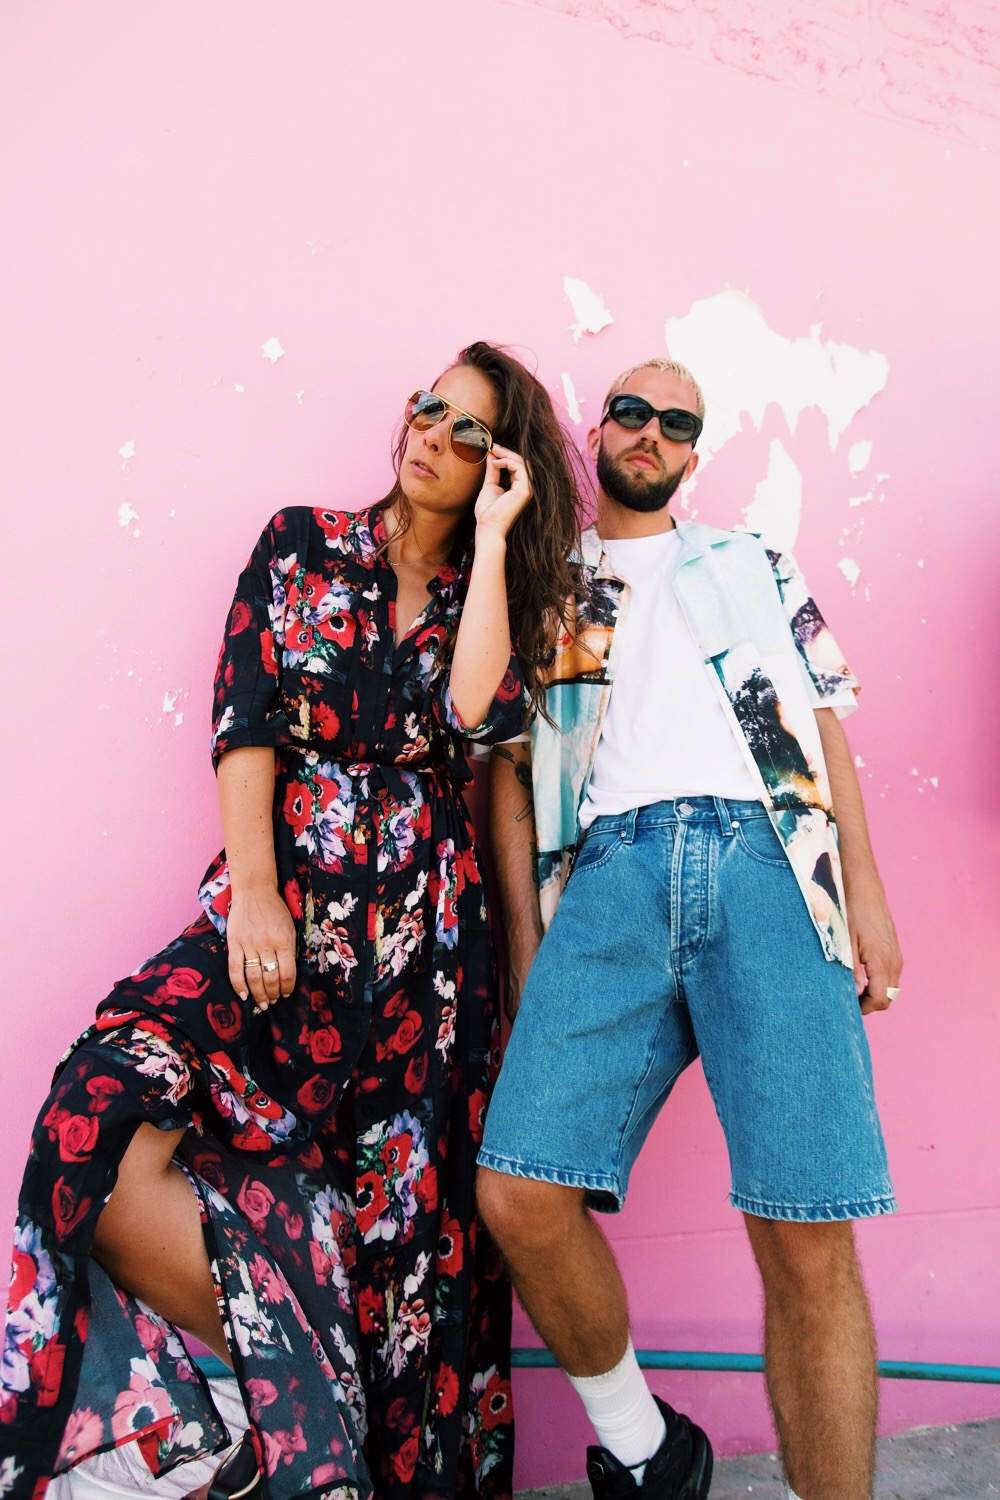 jaimetoutcheztoi pink wall fashion couple street style mode